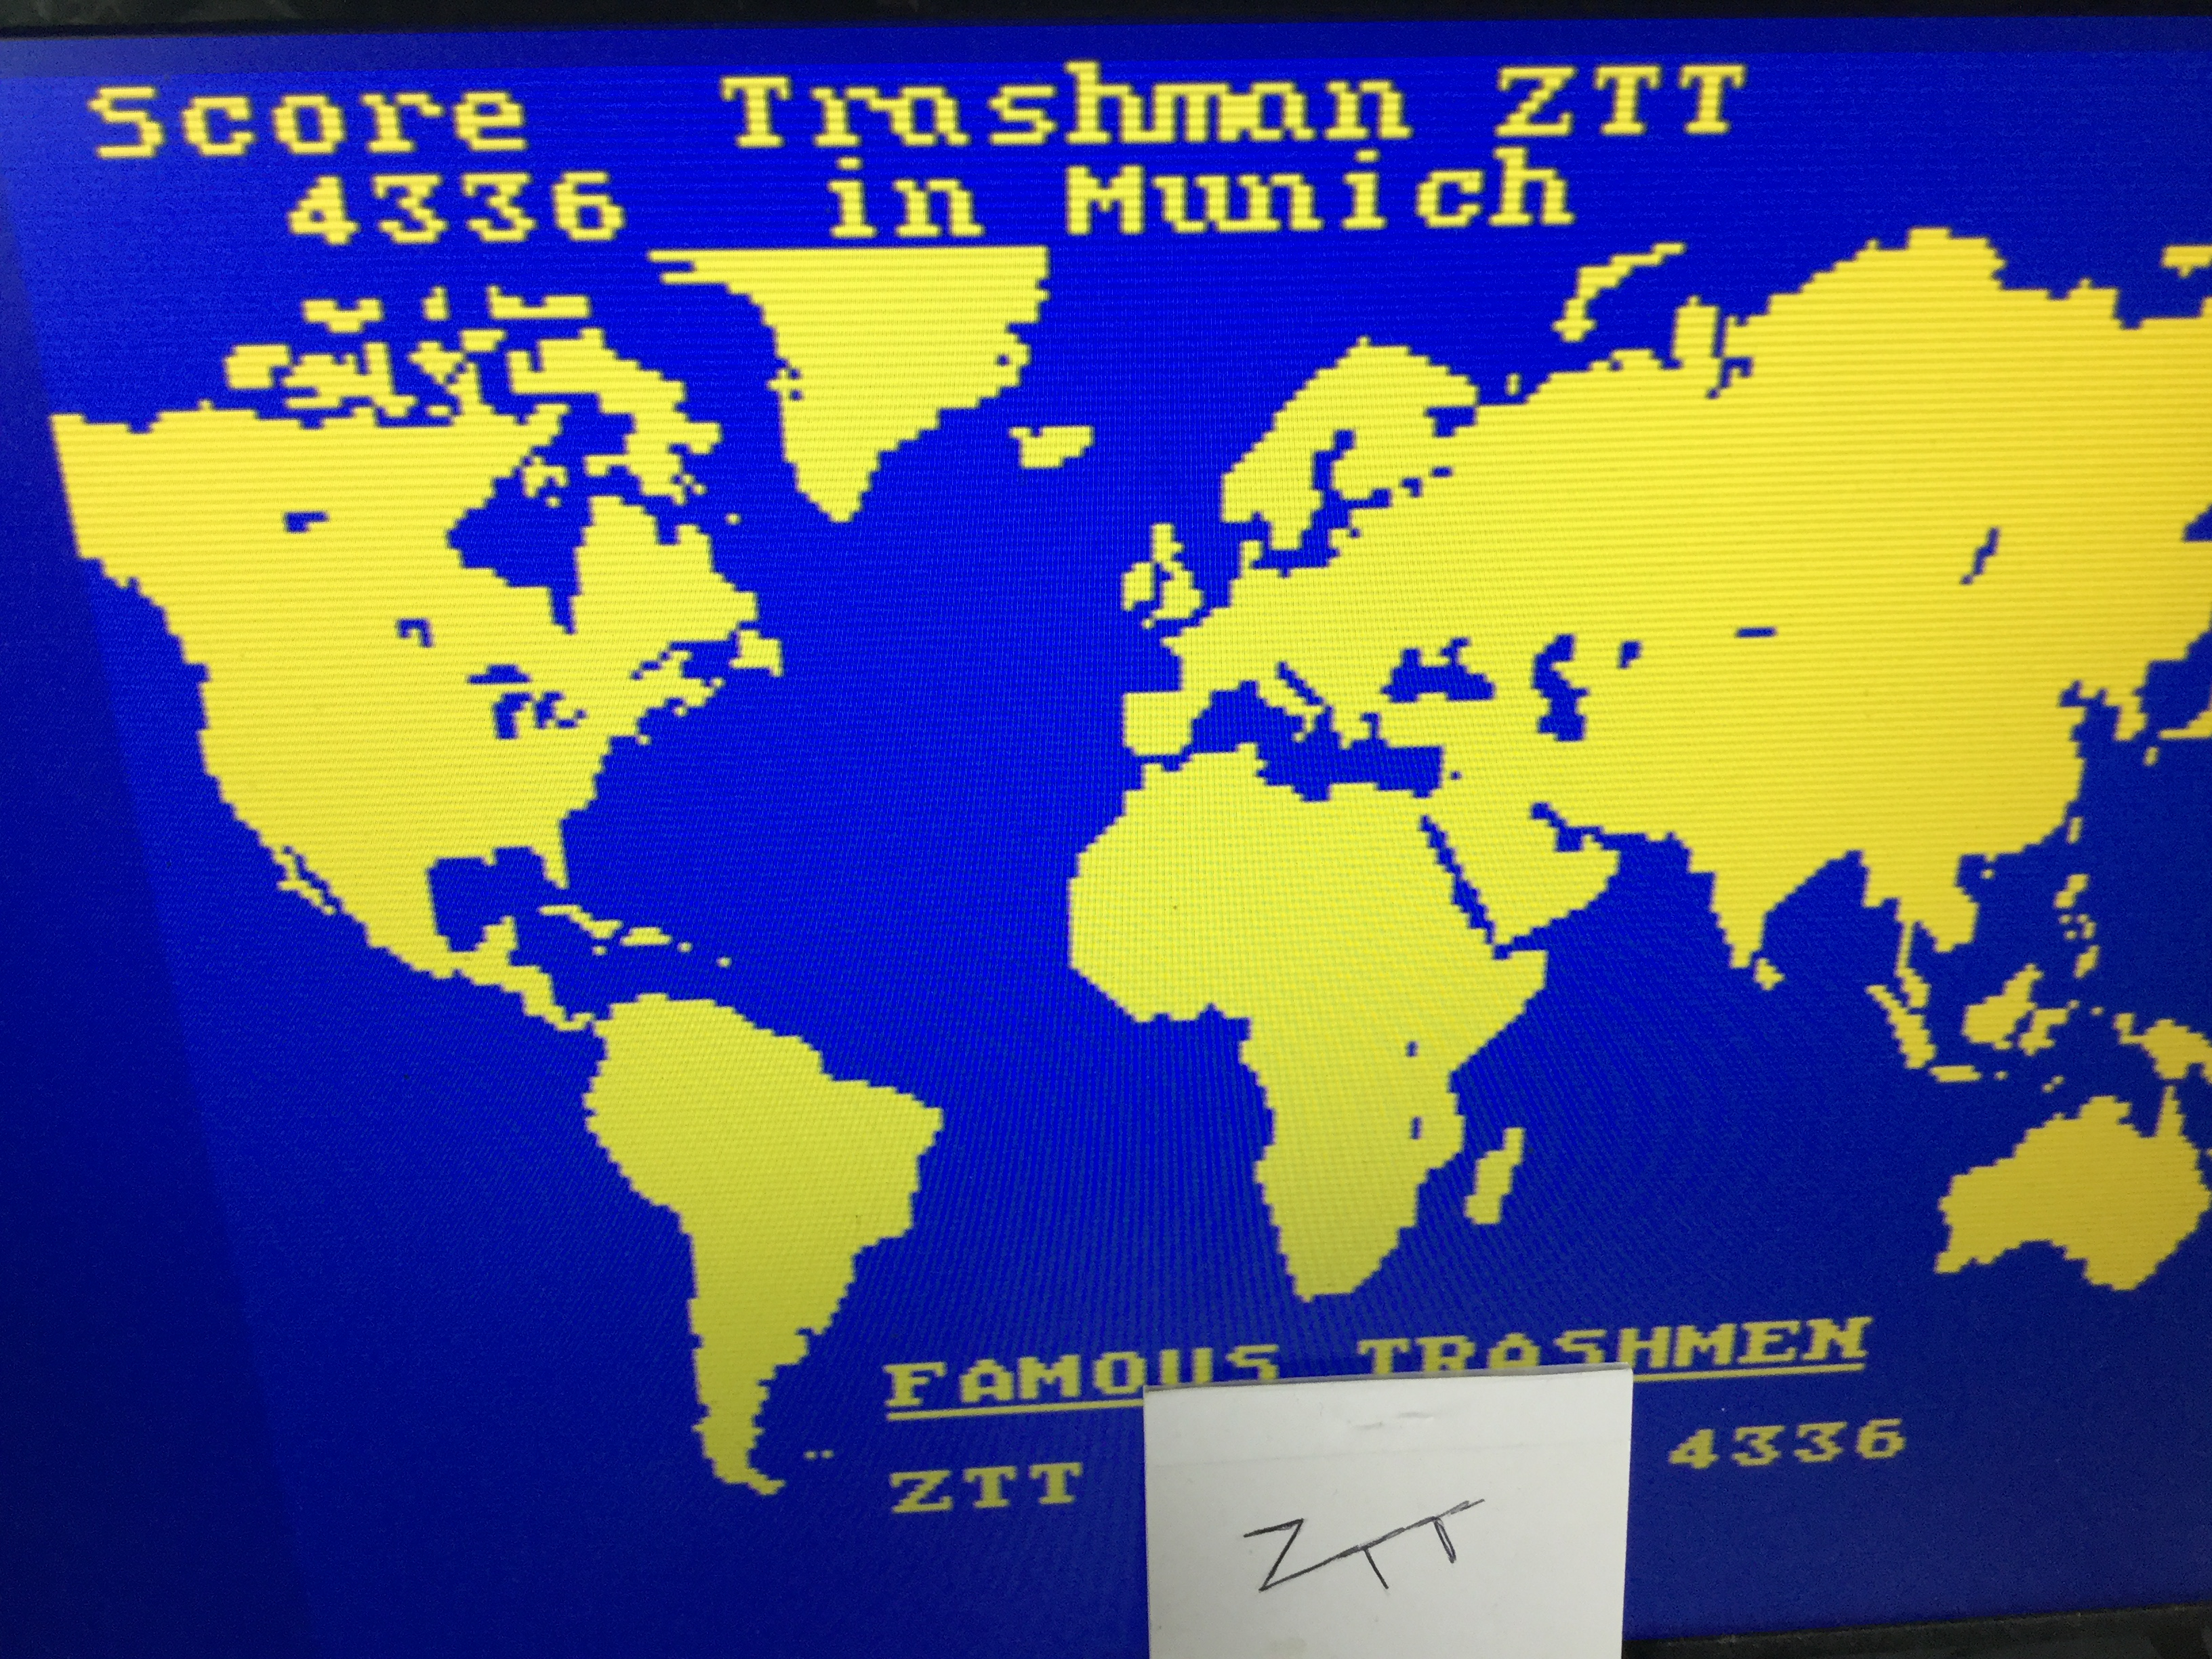 Frankie: Travel with Trashman (ZX Spectrum Emulated) 4,336 points on 2019-03-10 04:42:14